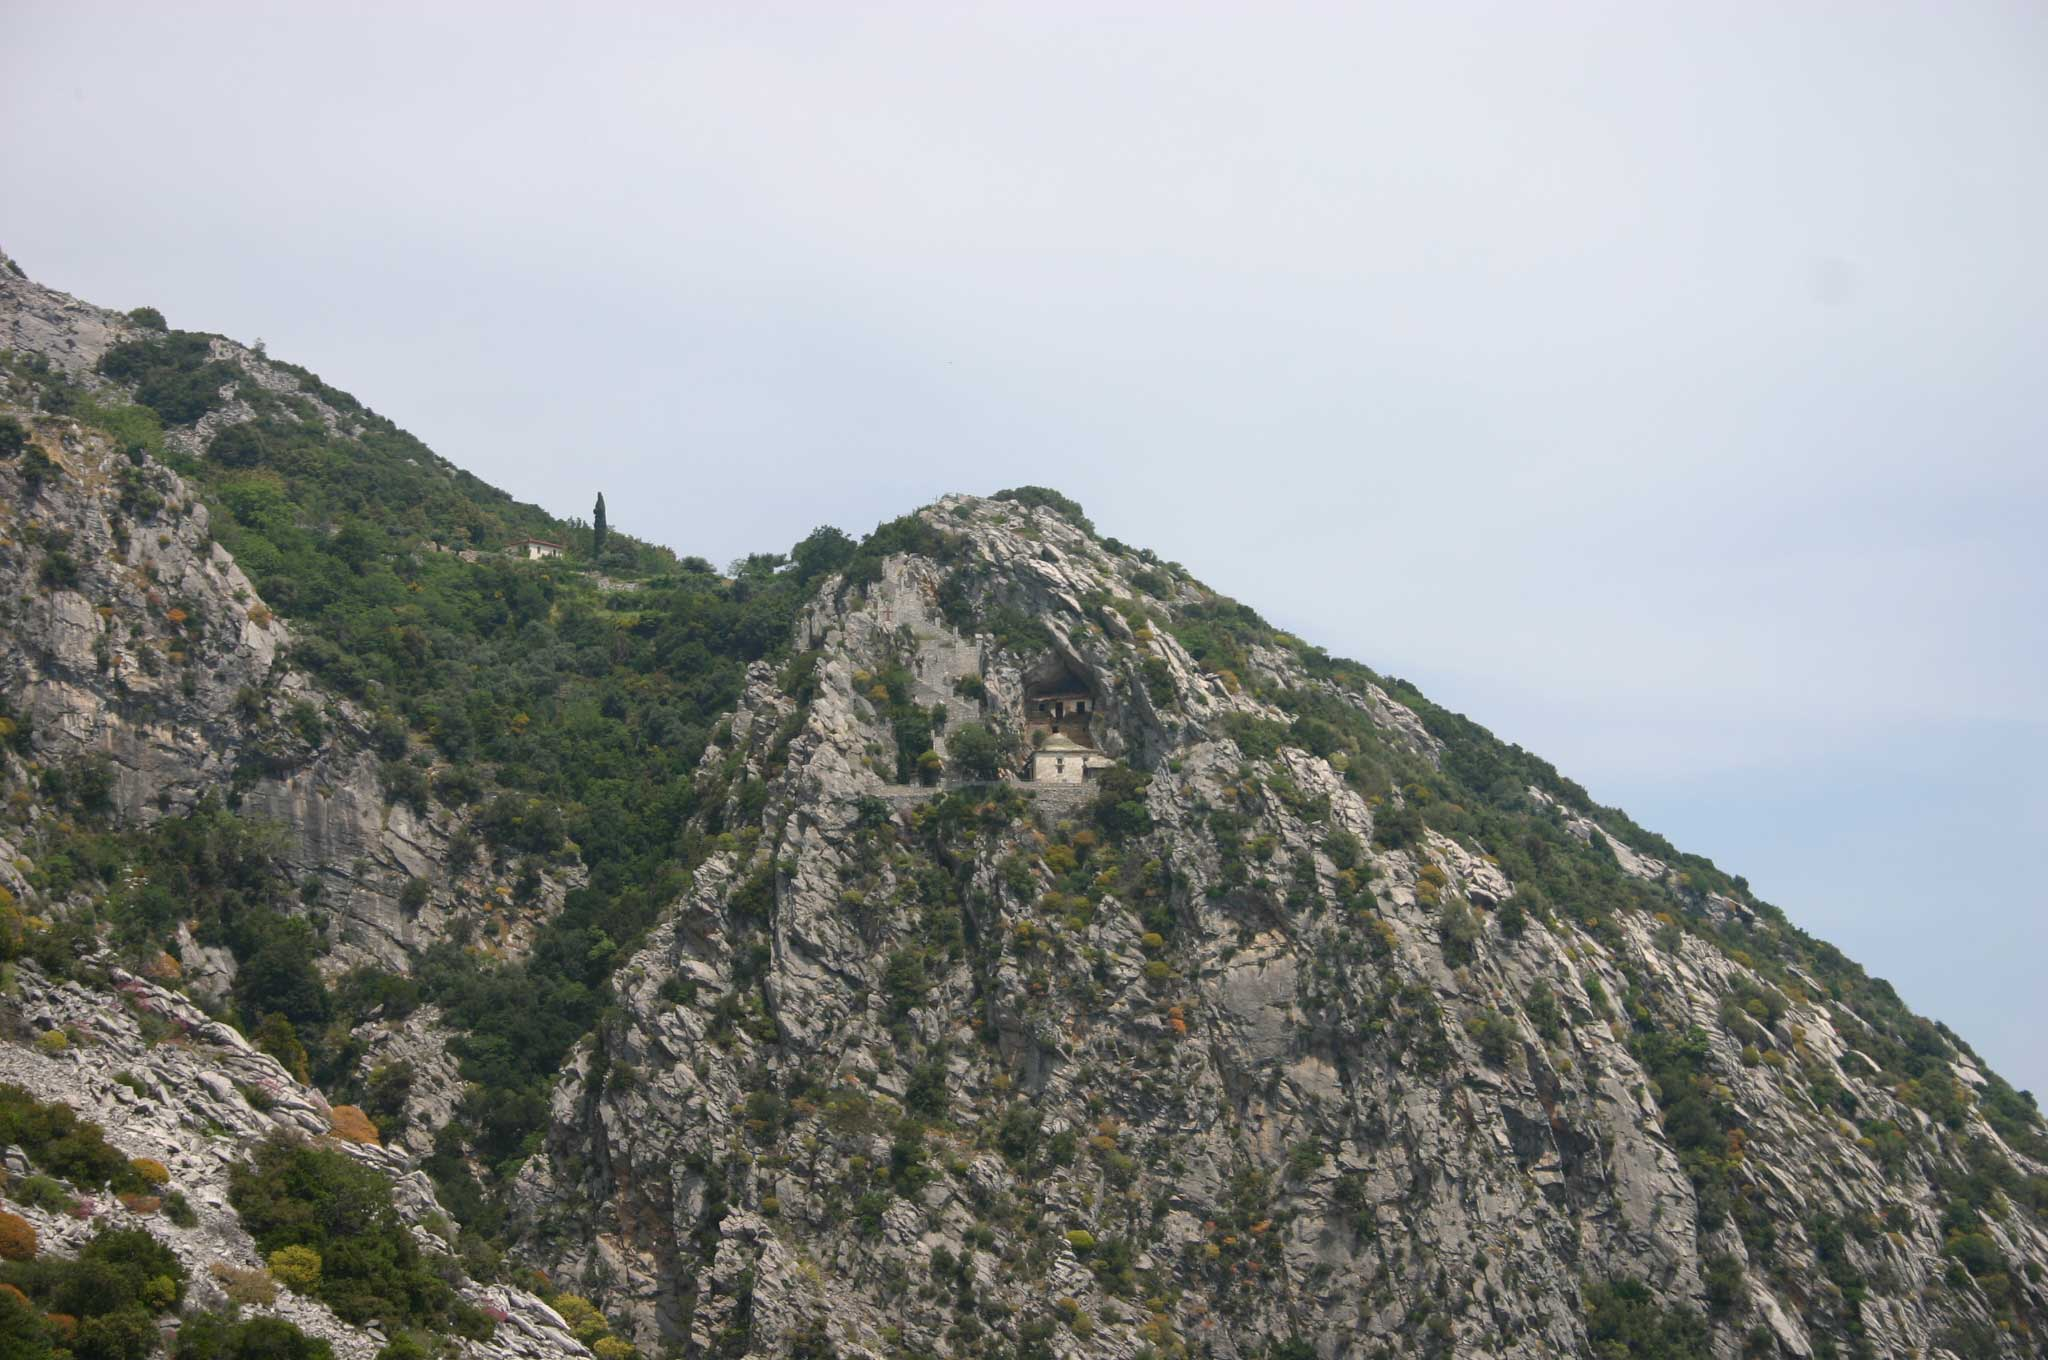 Mt Athos - Cliff-face Hermitage - © William Mackesy